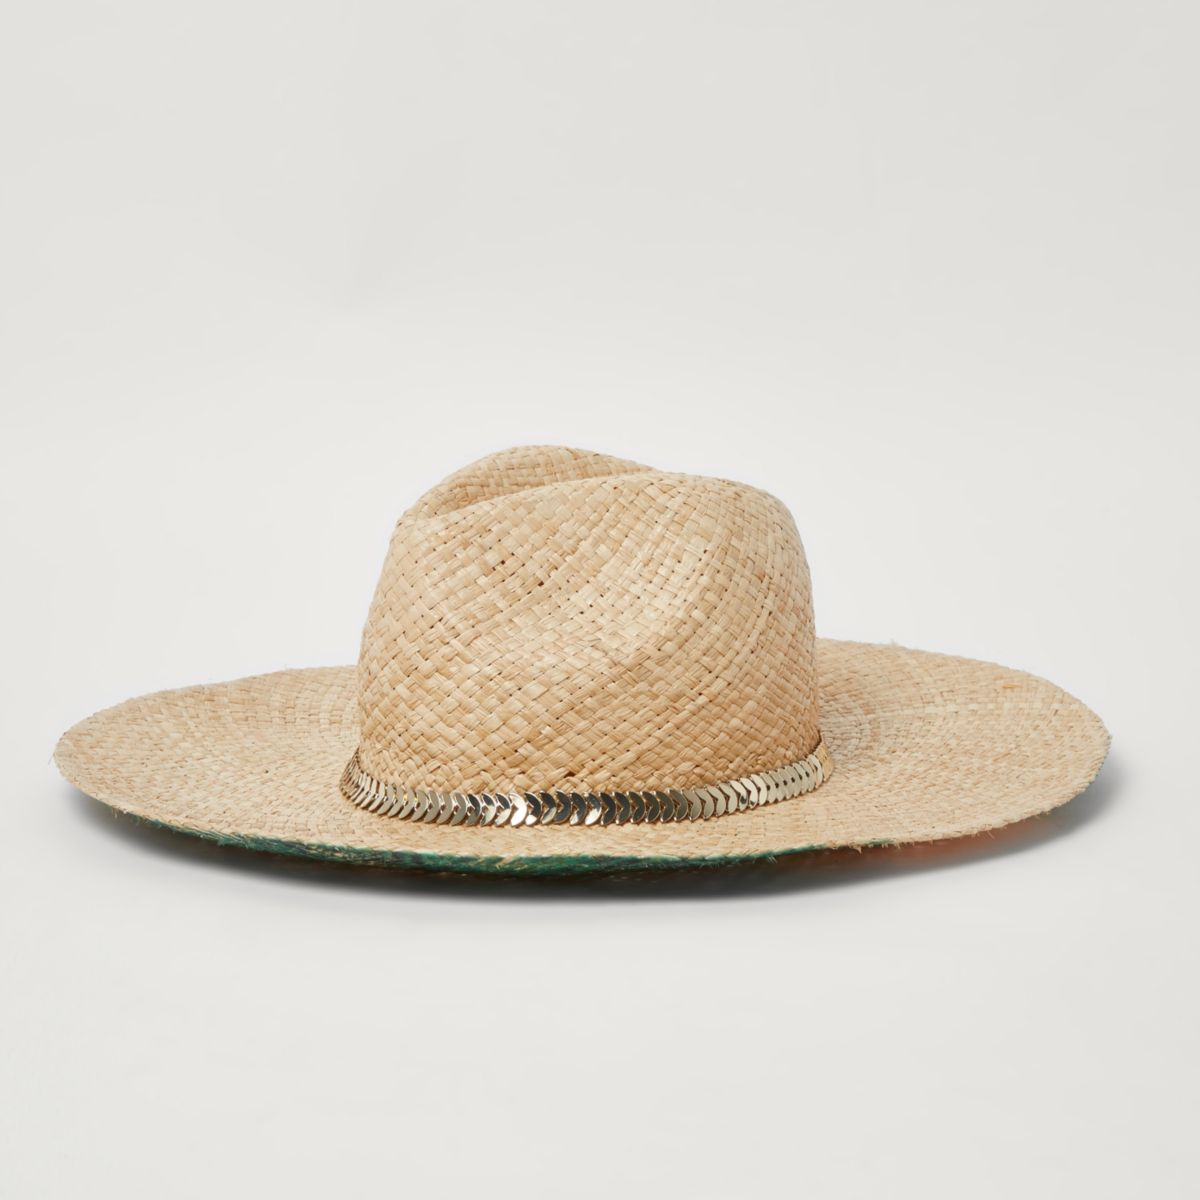 Beige straw palm print sun hat